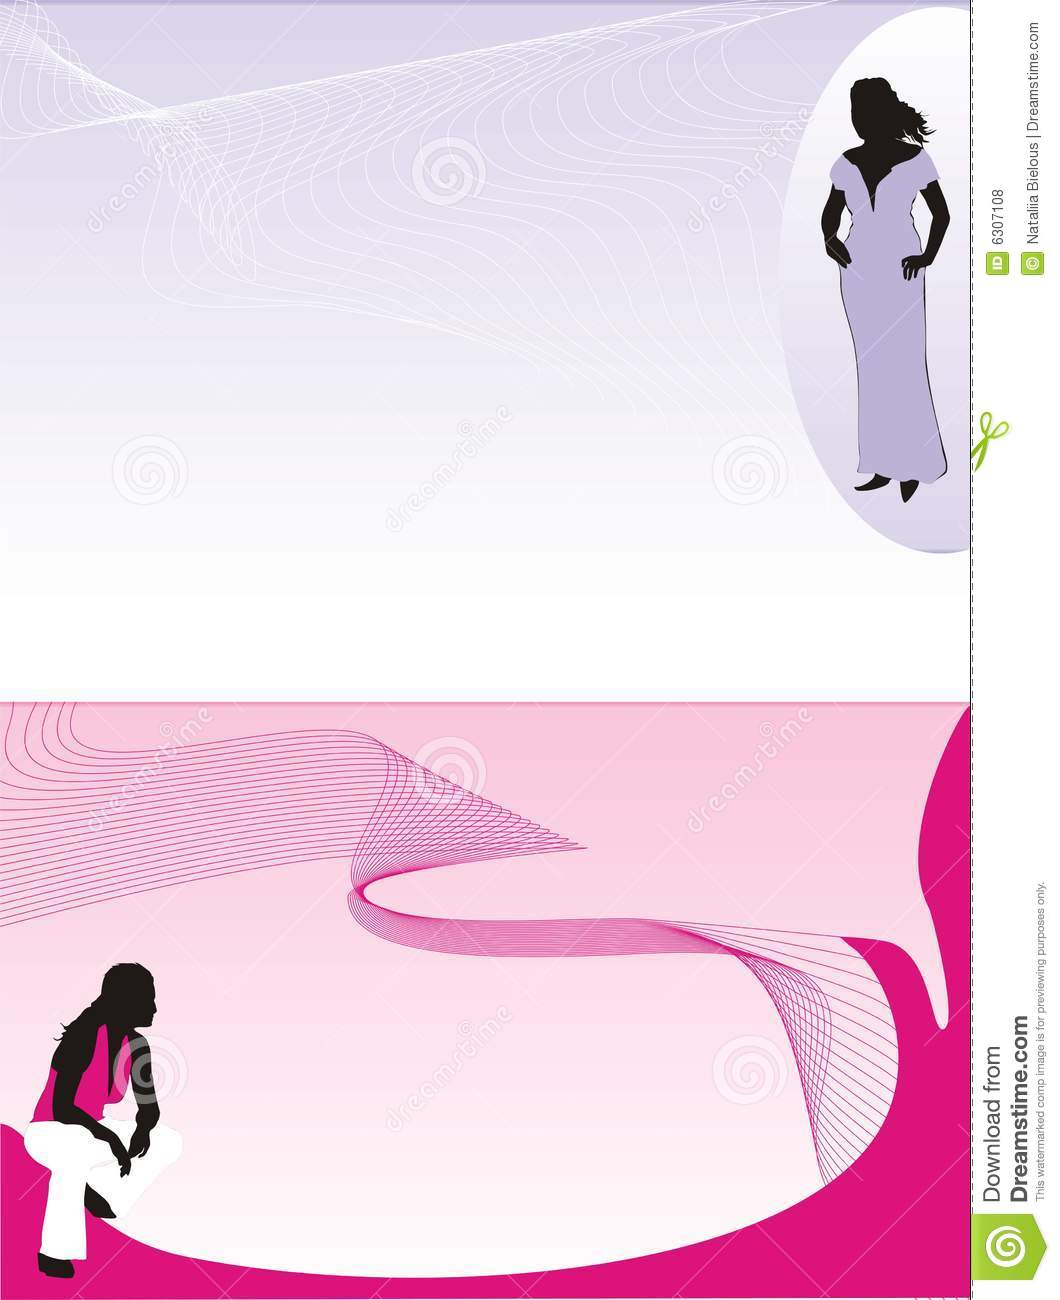 women silhouettes fashion style background for b stock